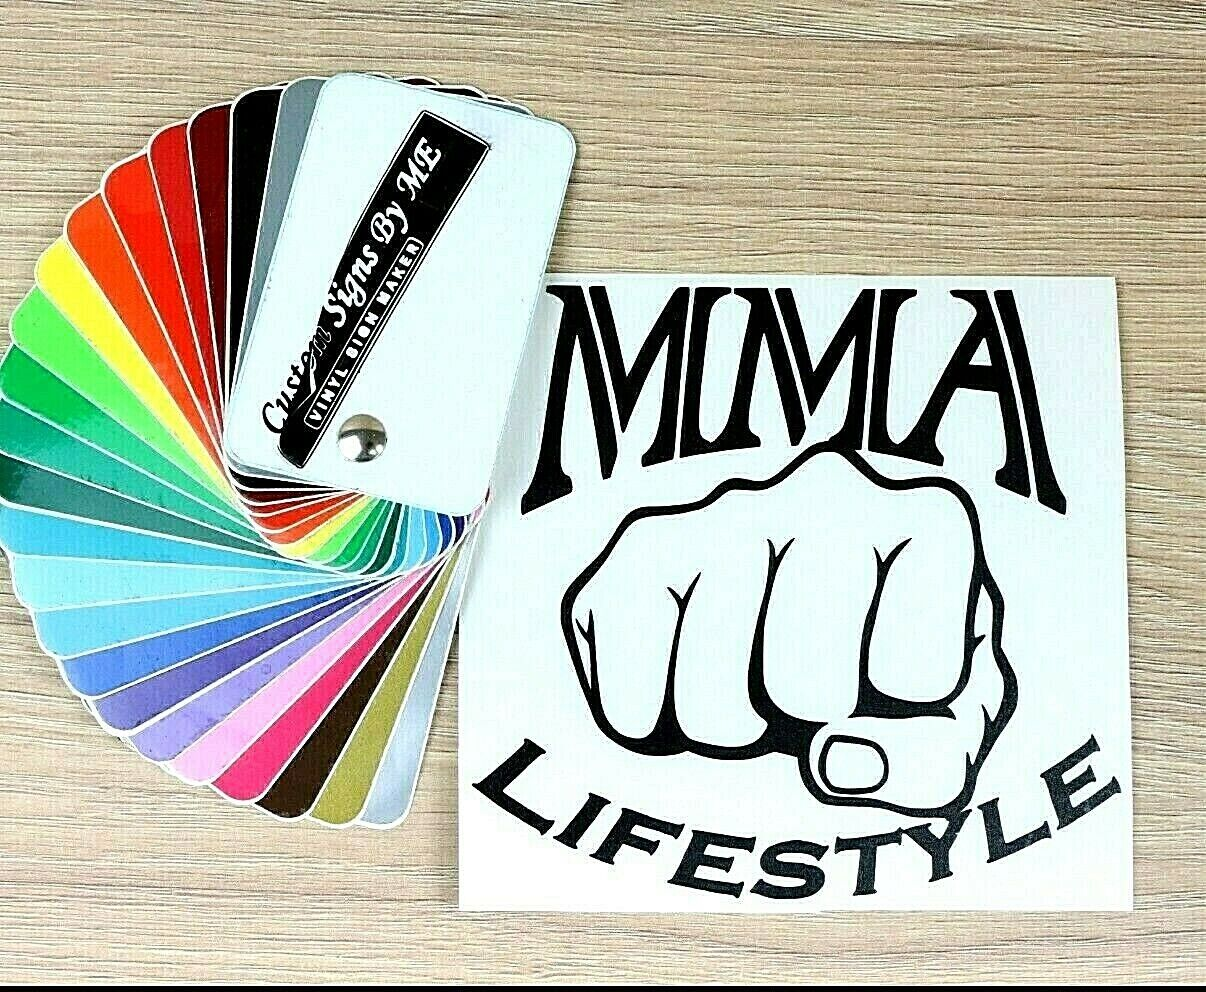 BOXER Fight Sticker Vinyl Decal Adhesive Wall Window Bumper Tailgate Laptop BLAC